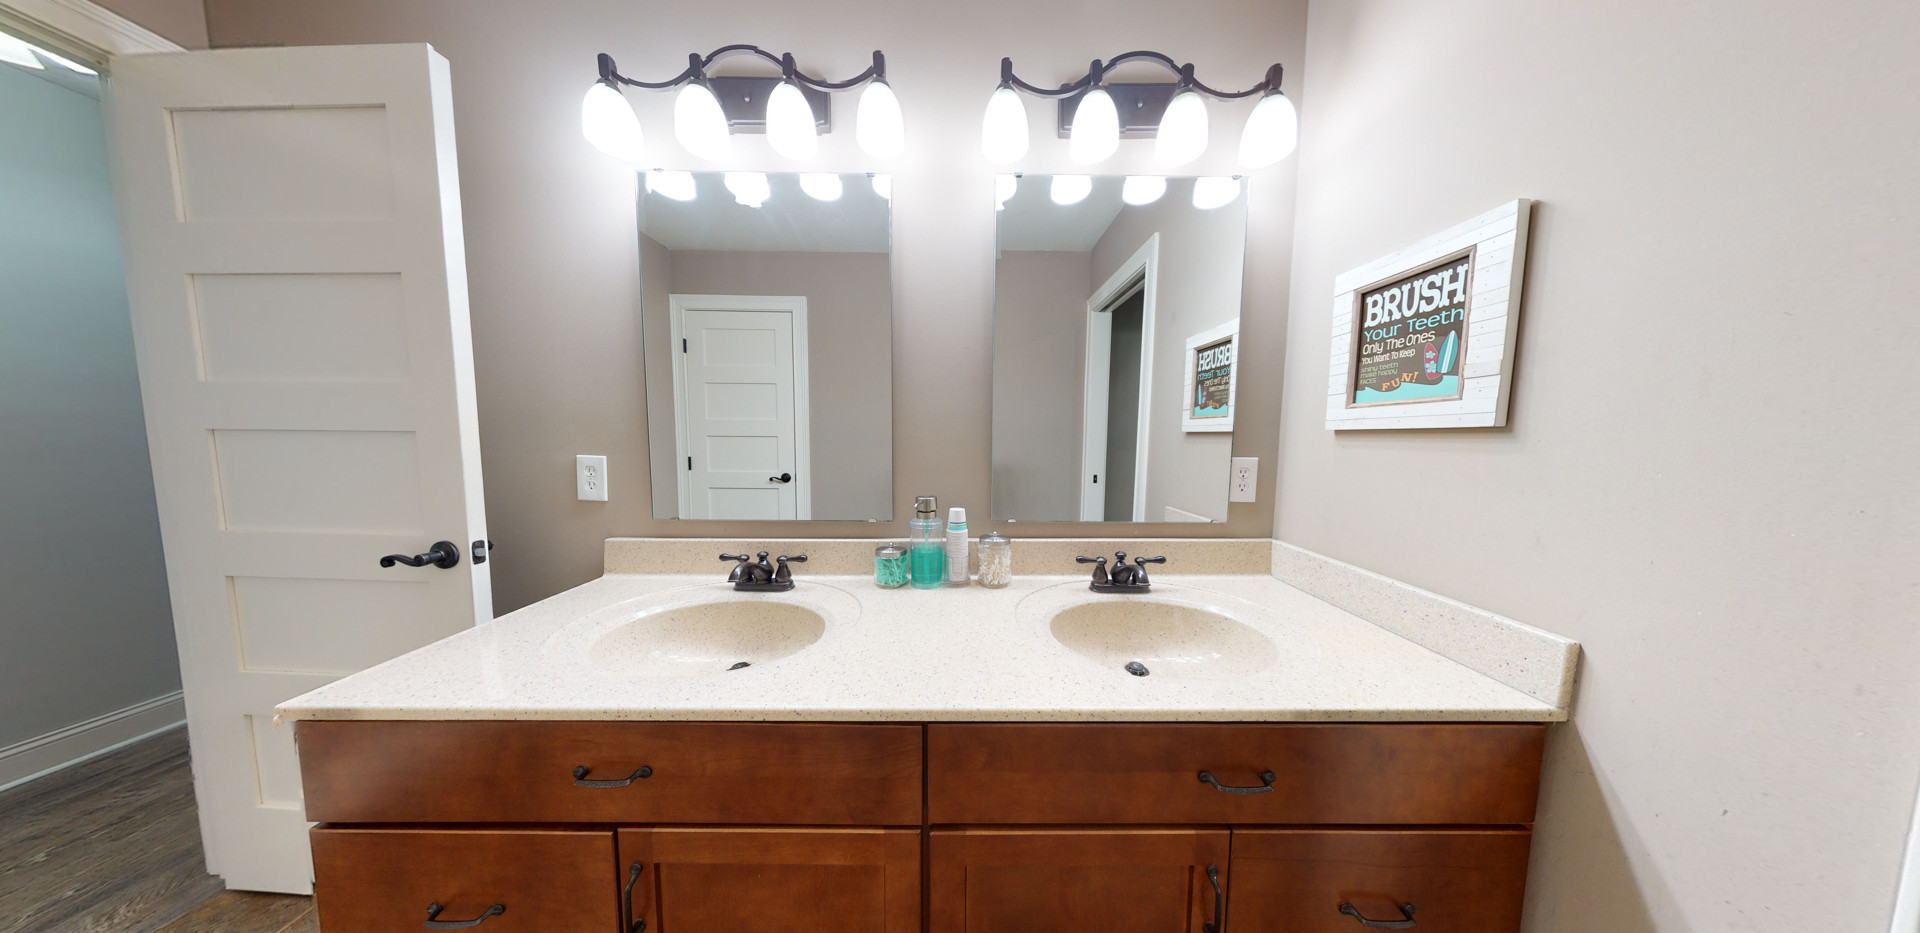 Beige bathroom with white countertops, beautiful wall lamps, and brown vanity.